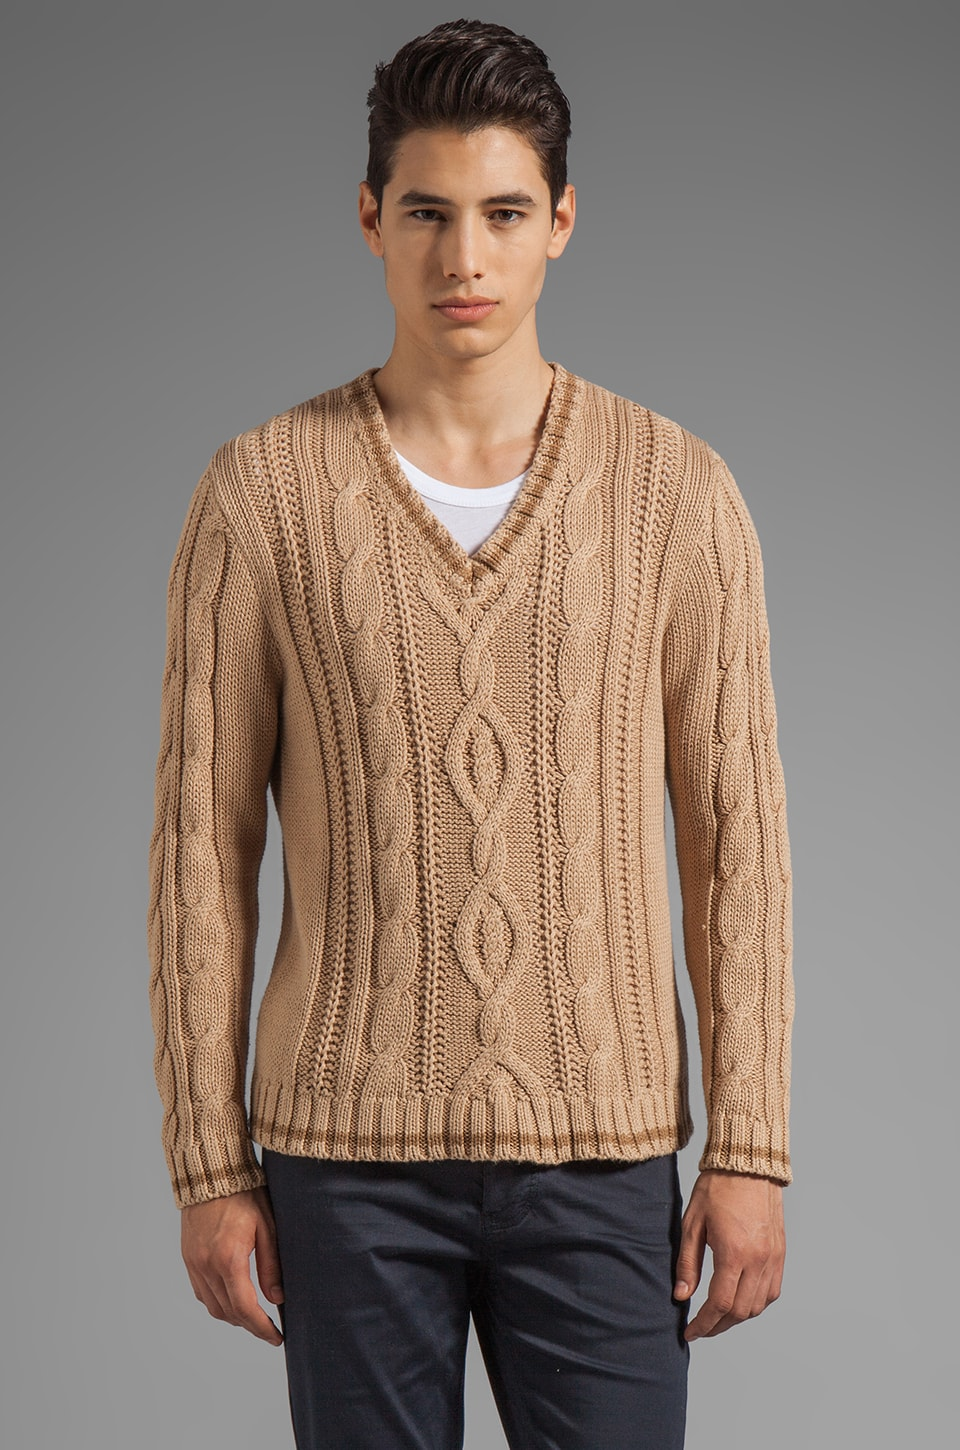 GANT Rugger Loose Cable Knit Sweater in Bisquit